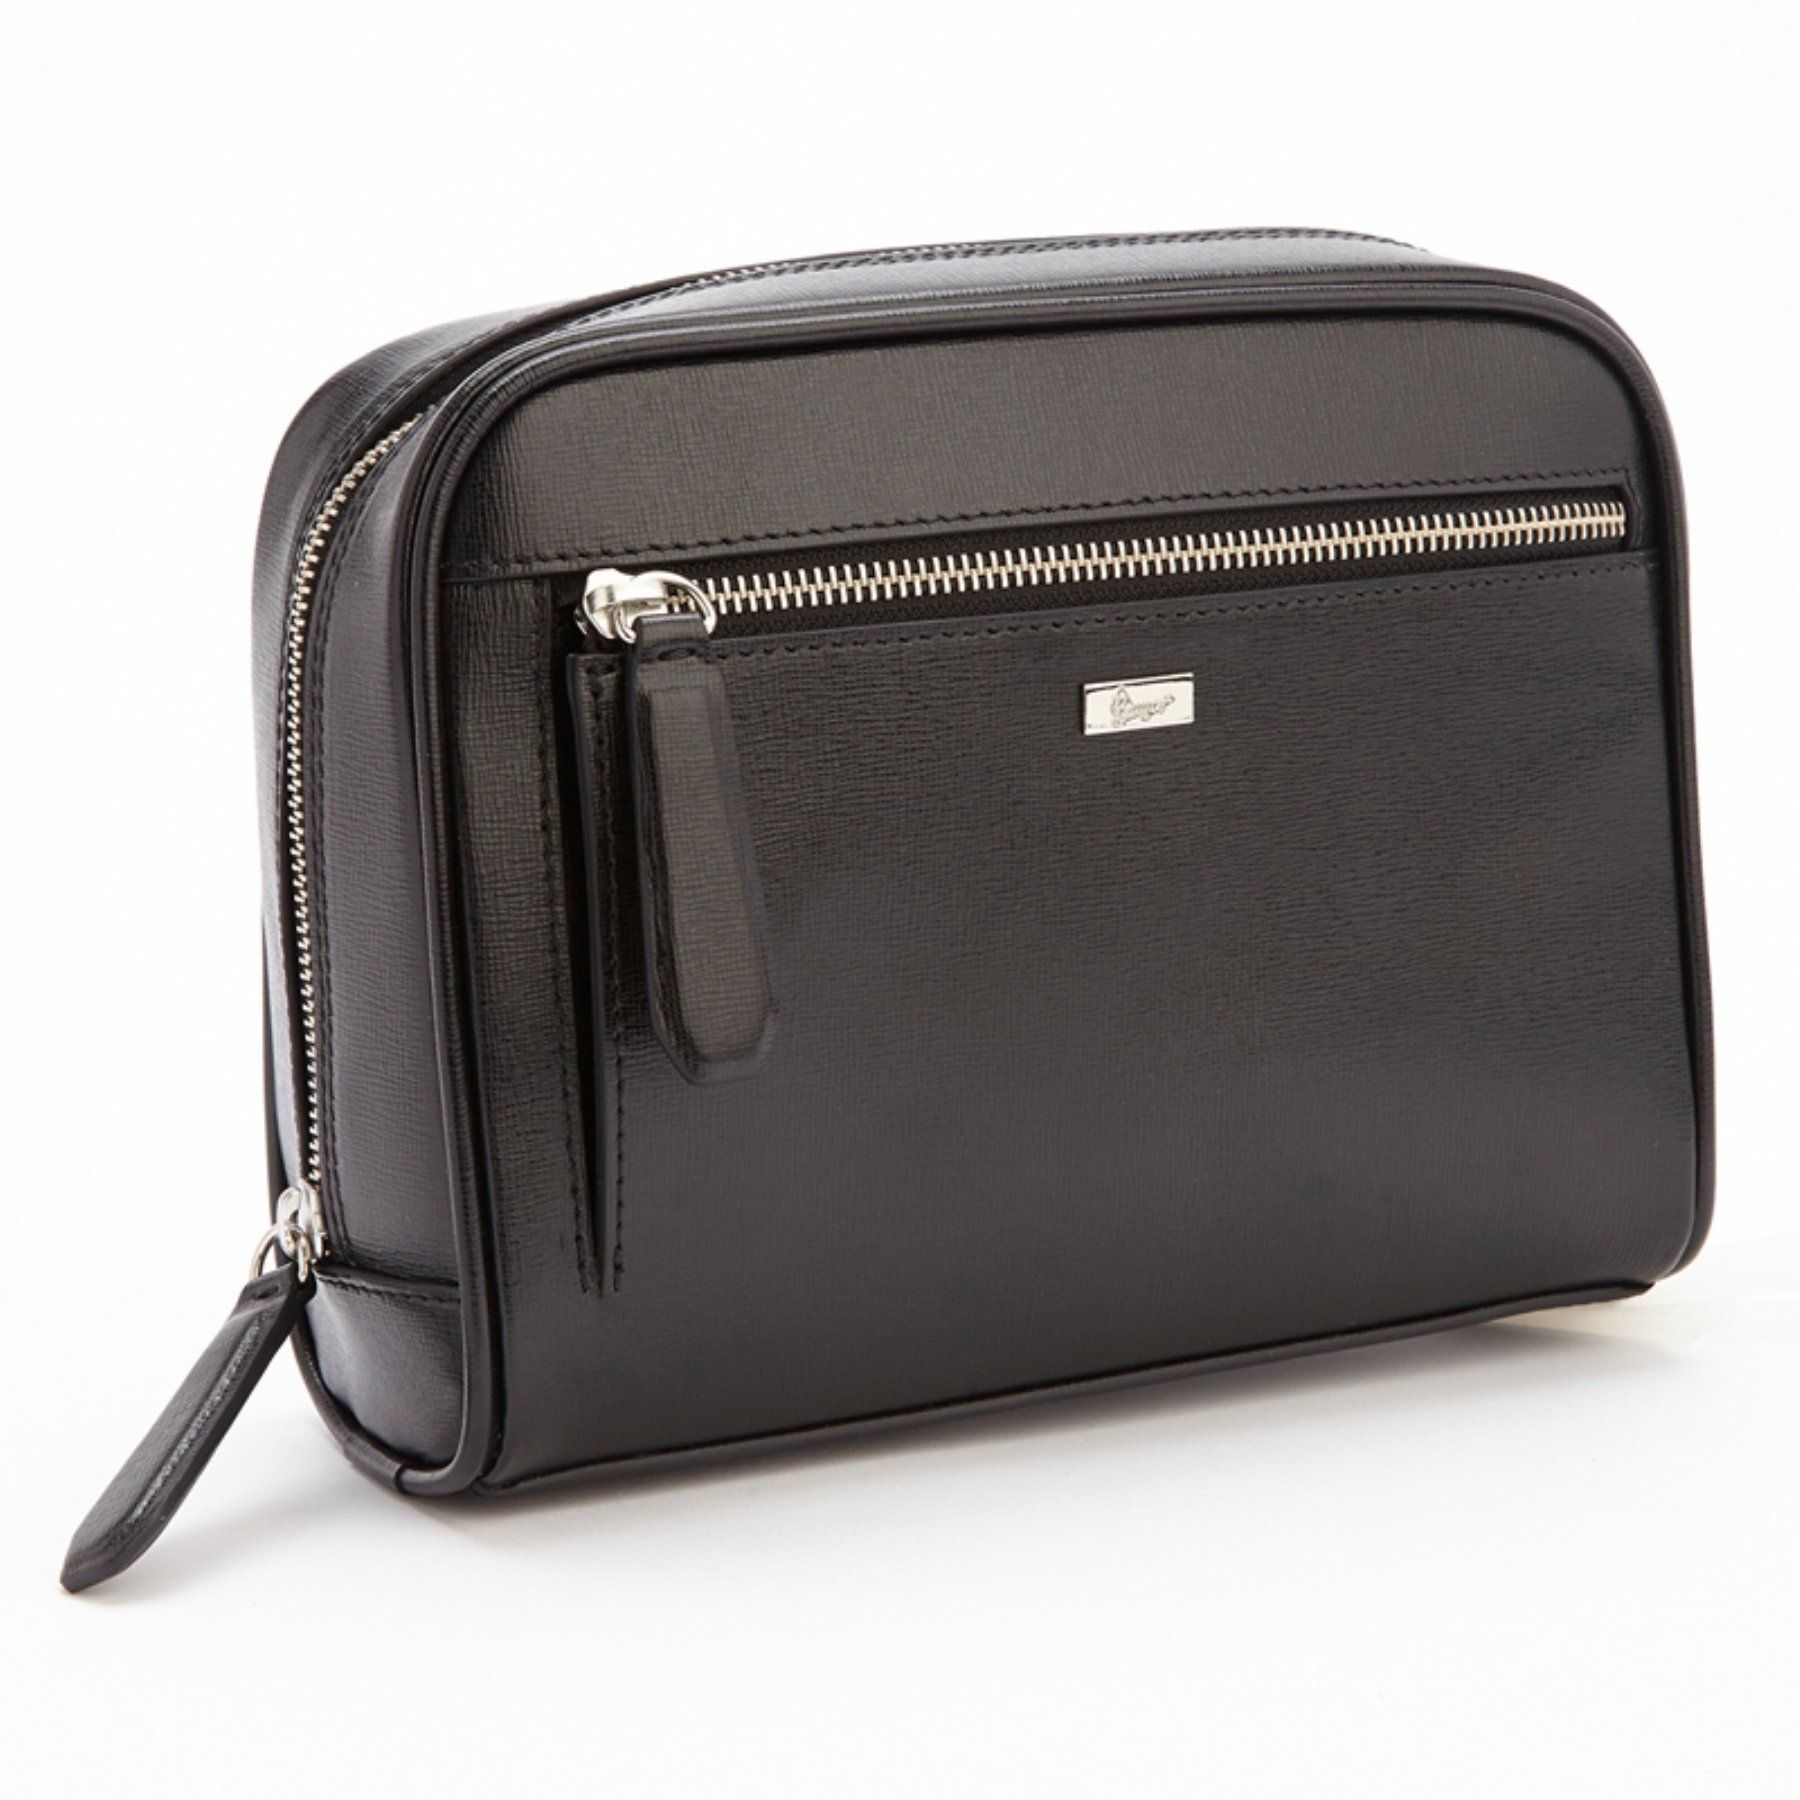 1a14bd8c9c9d Royce Leather Genuine Safin Leather Toiletry Travel Grooming Wash Bag - 230- BLACK-2